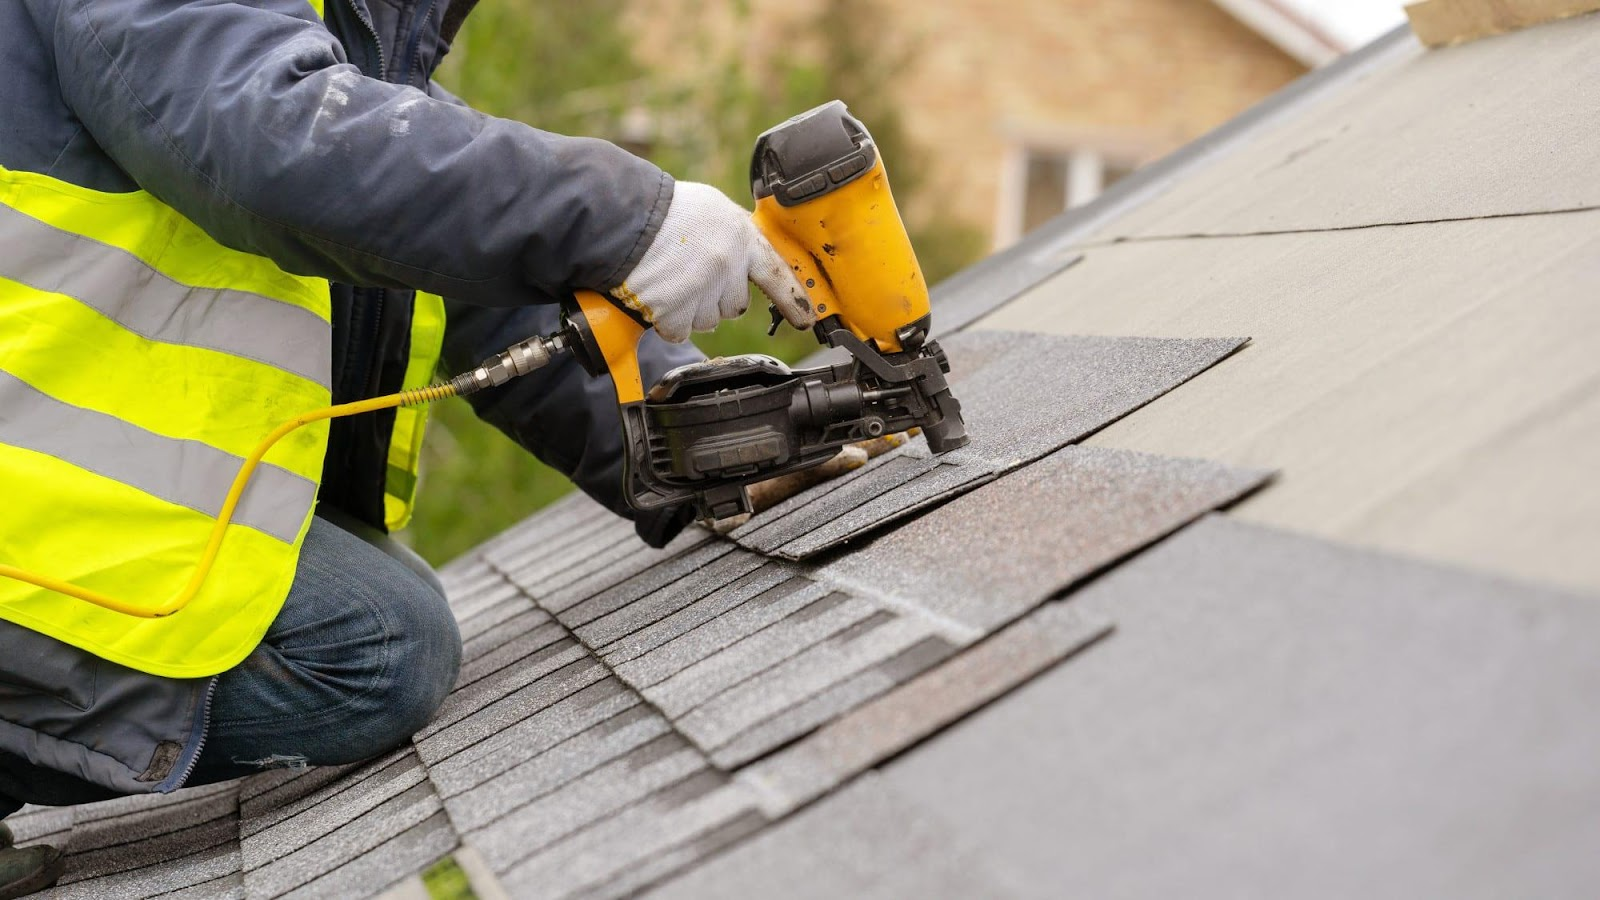 Workman using pneumatic nail gun install tile on roof of new house under  construction - Shingle Tech